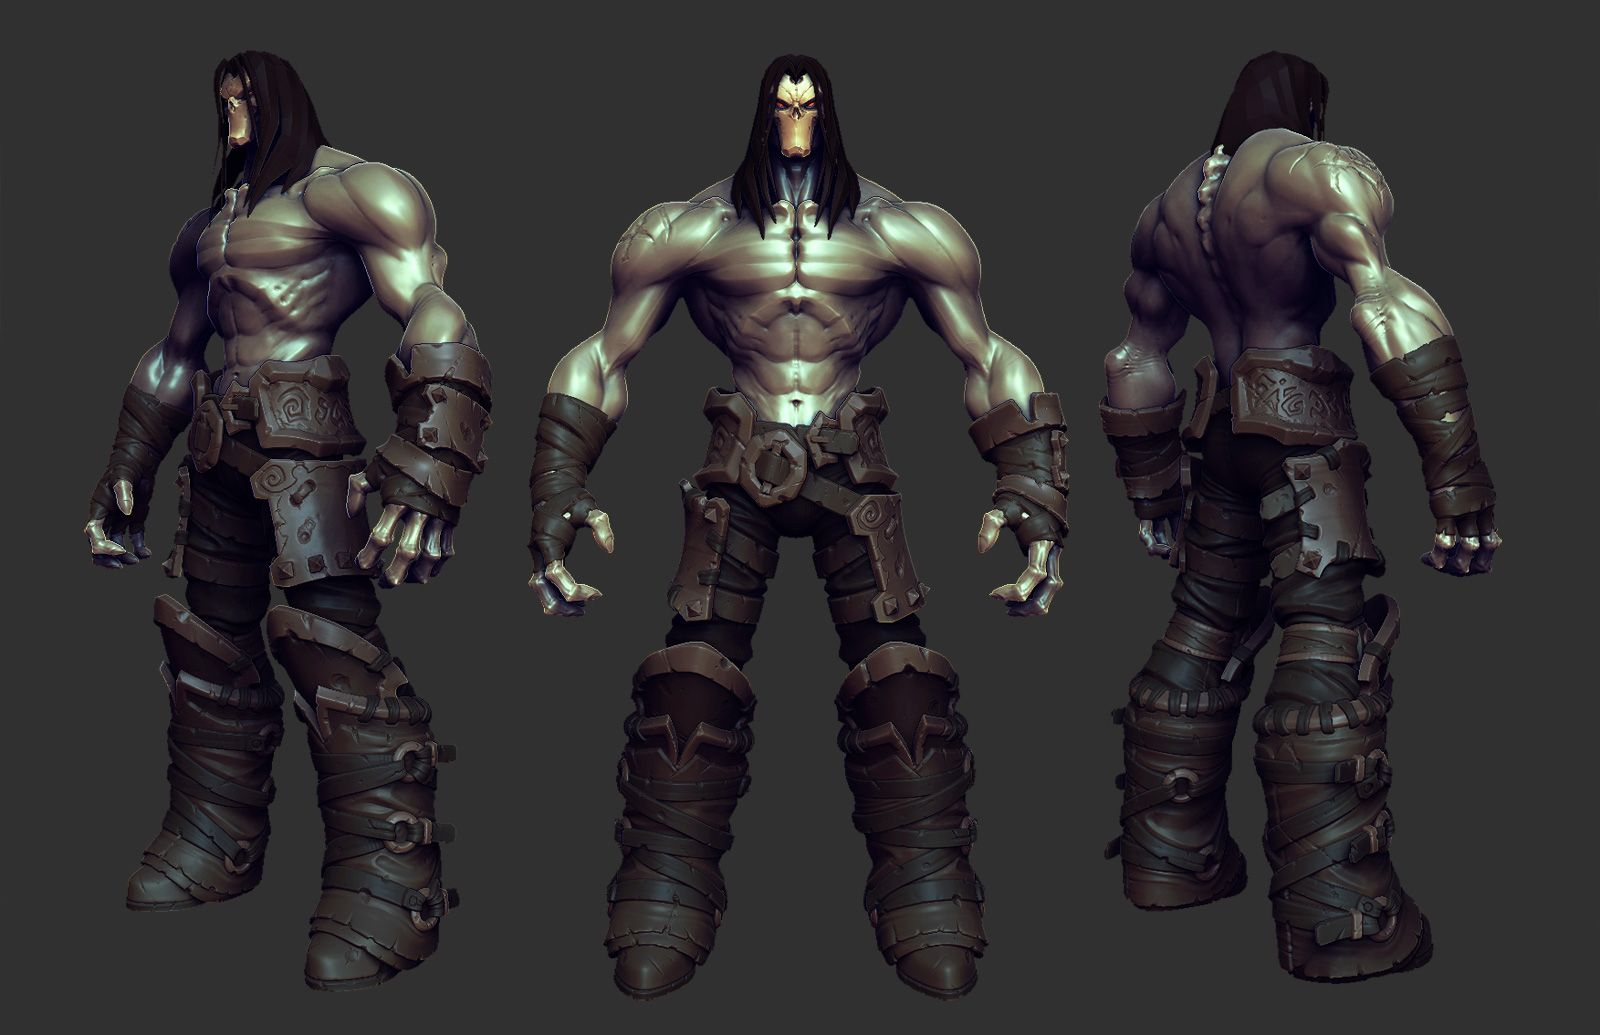 Darksiders 2 - Death Turnaround | Monsters | Pinterest ...